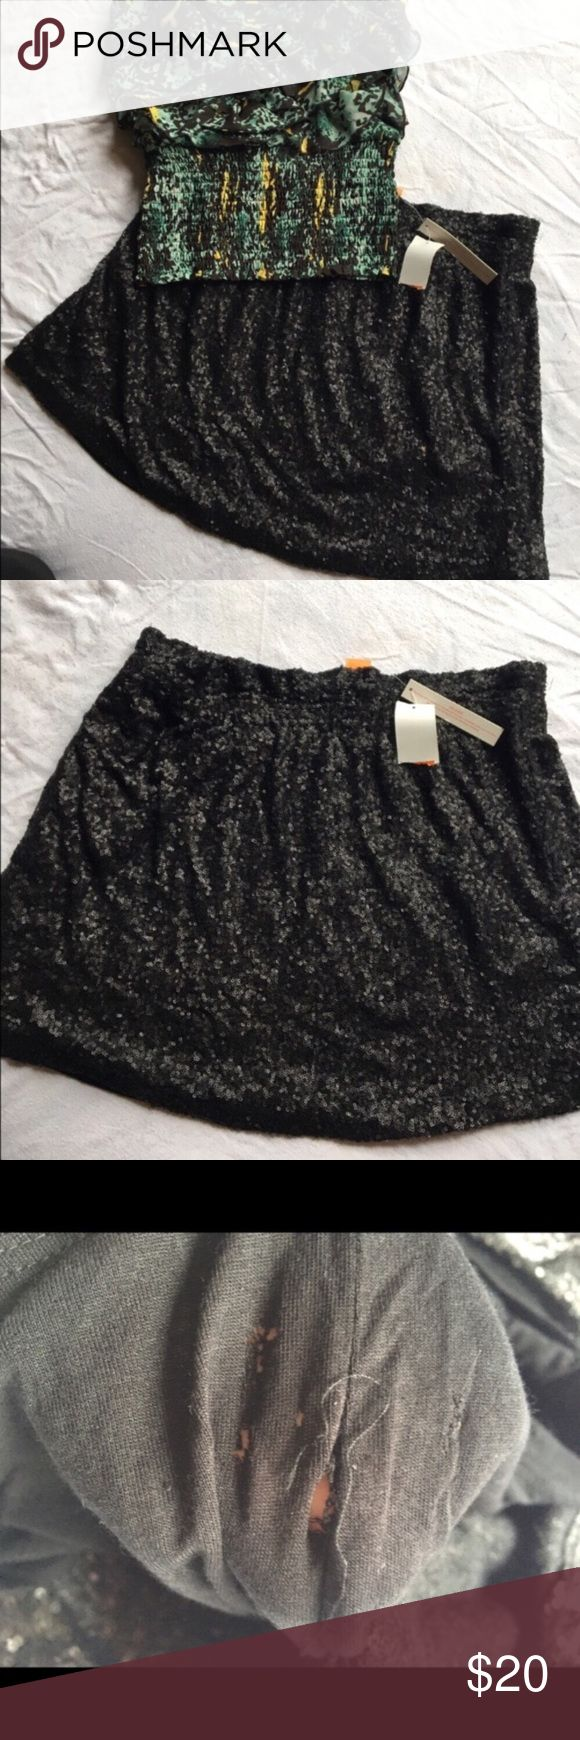 BNWT Sparkle Mini Skirt Girls night out here you come! Beautiful and sassy Sequin mini skirt. Stretch waistband. BNWT but does have a tear in the interior lining (not noticeable and doesn't affect wear at all). Shine like the star you are in this comfortable and sexy skirt! Joe Fresh Skirts Mini